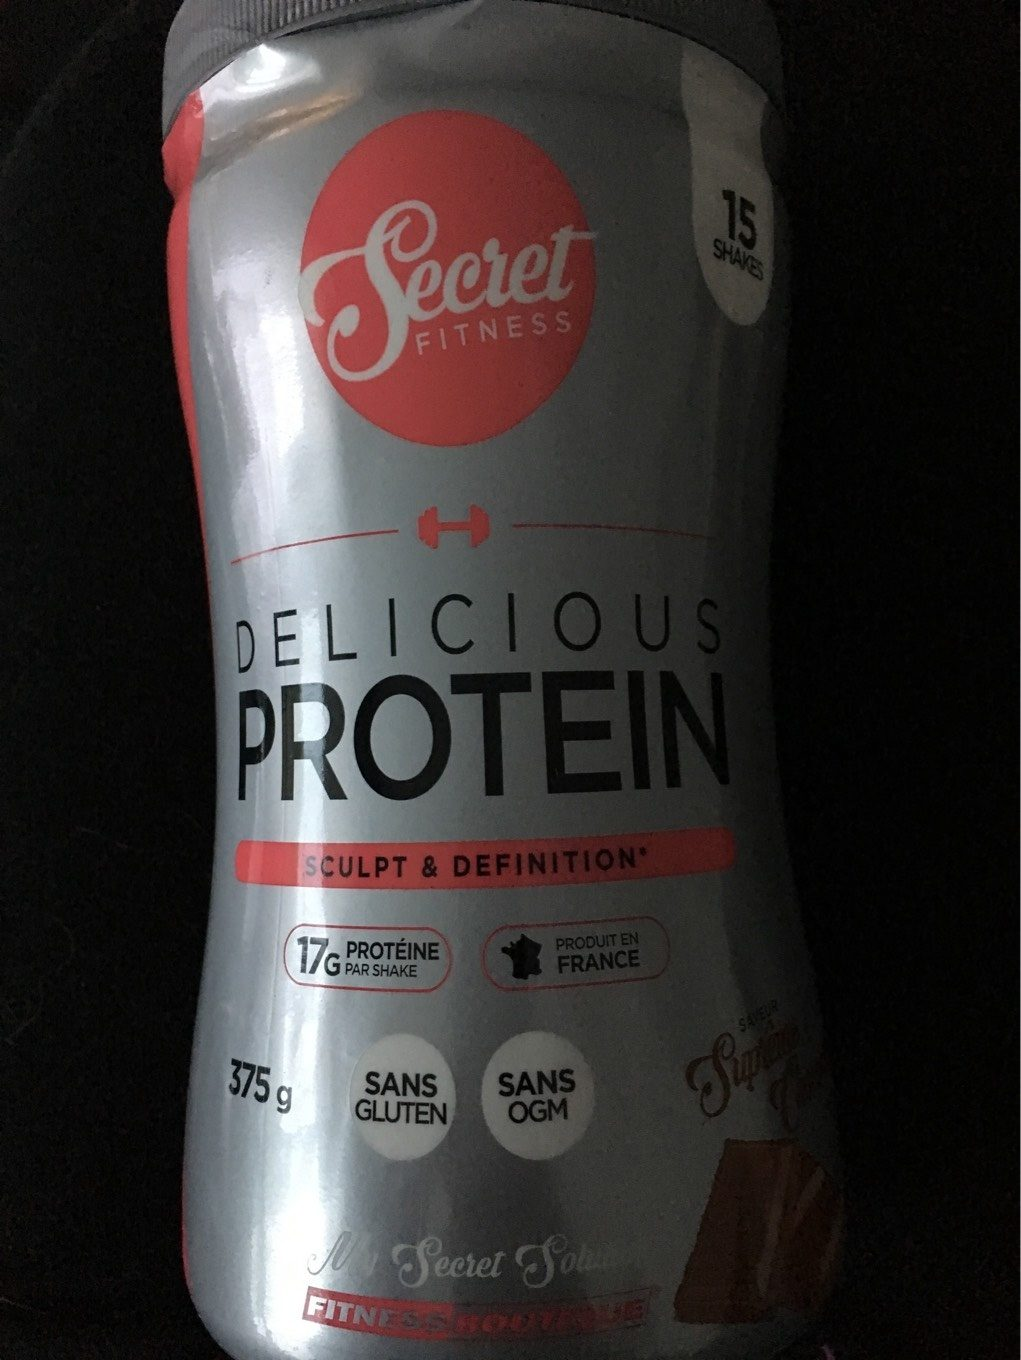 Delicious protein - Product